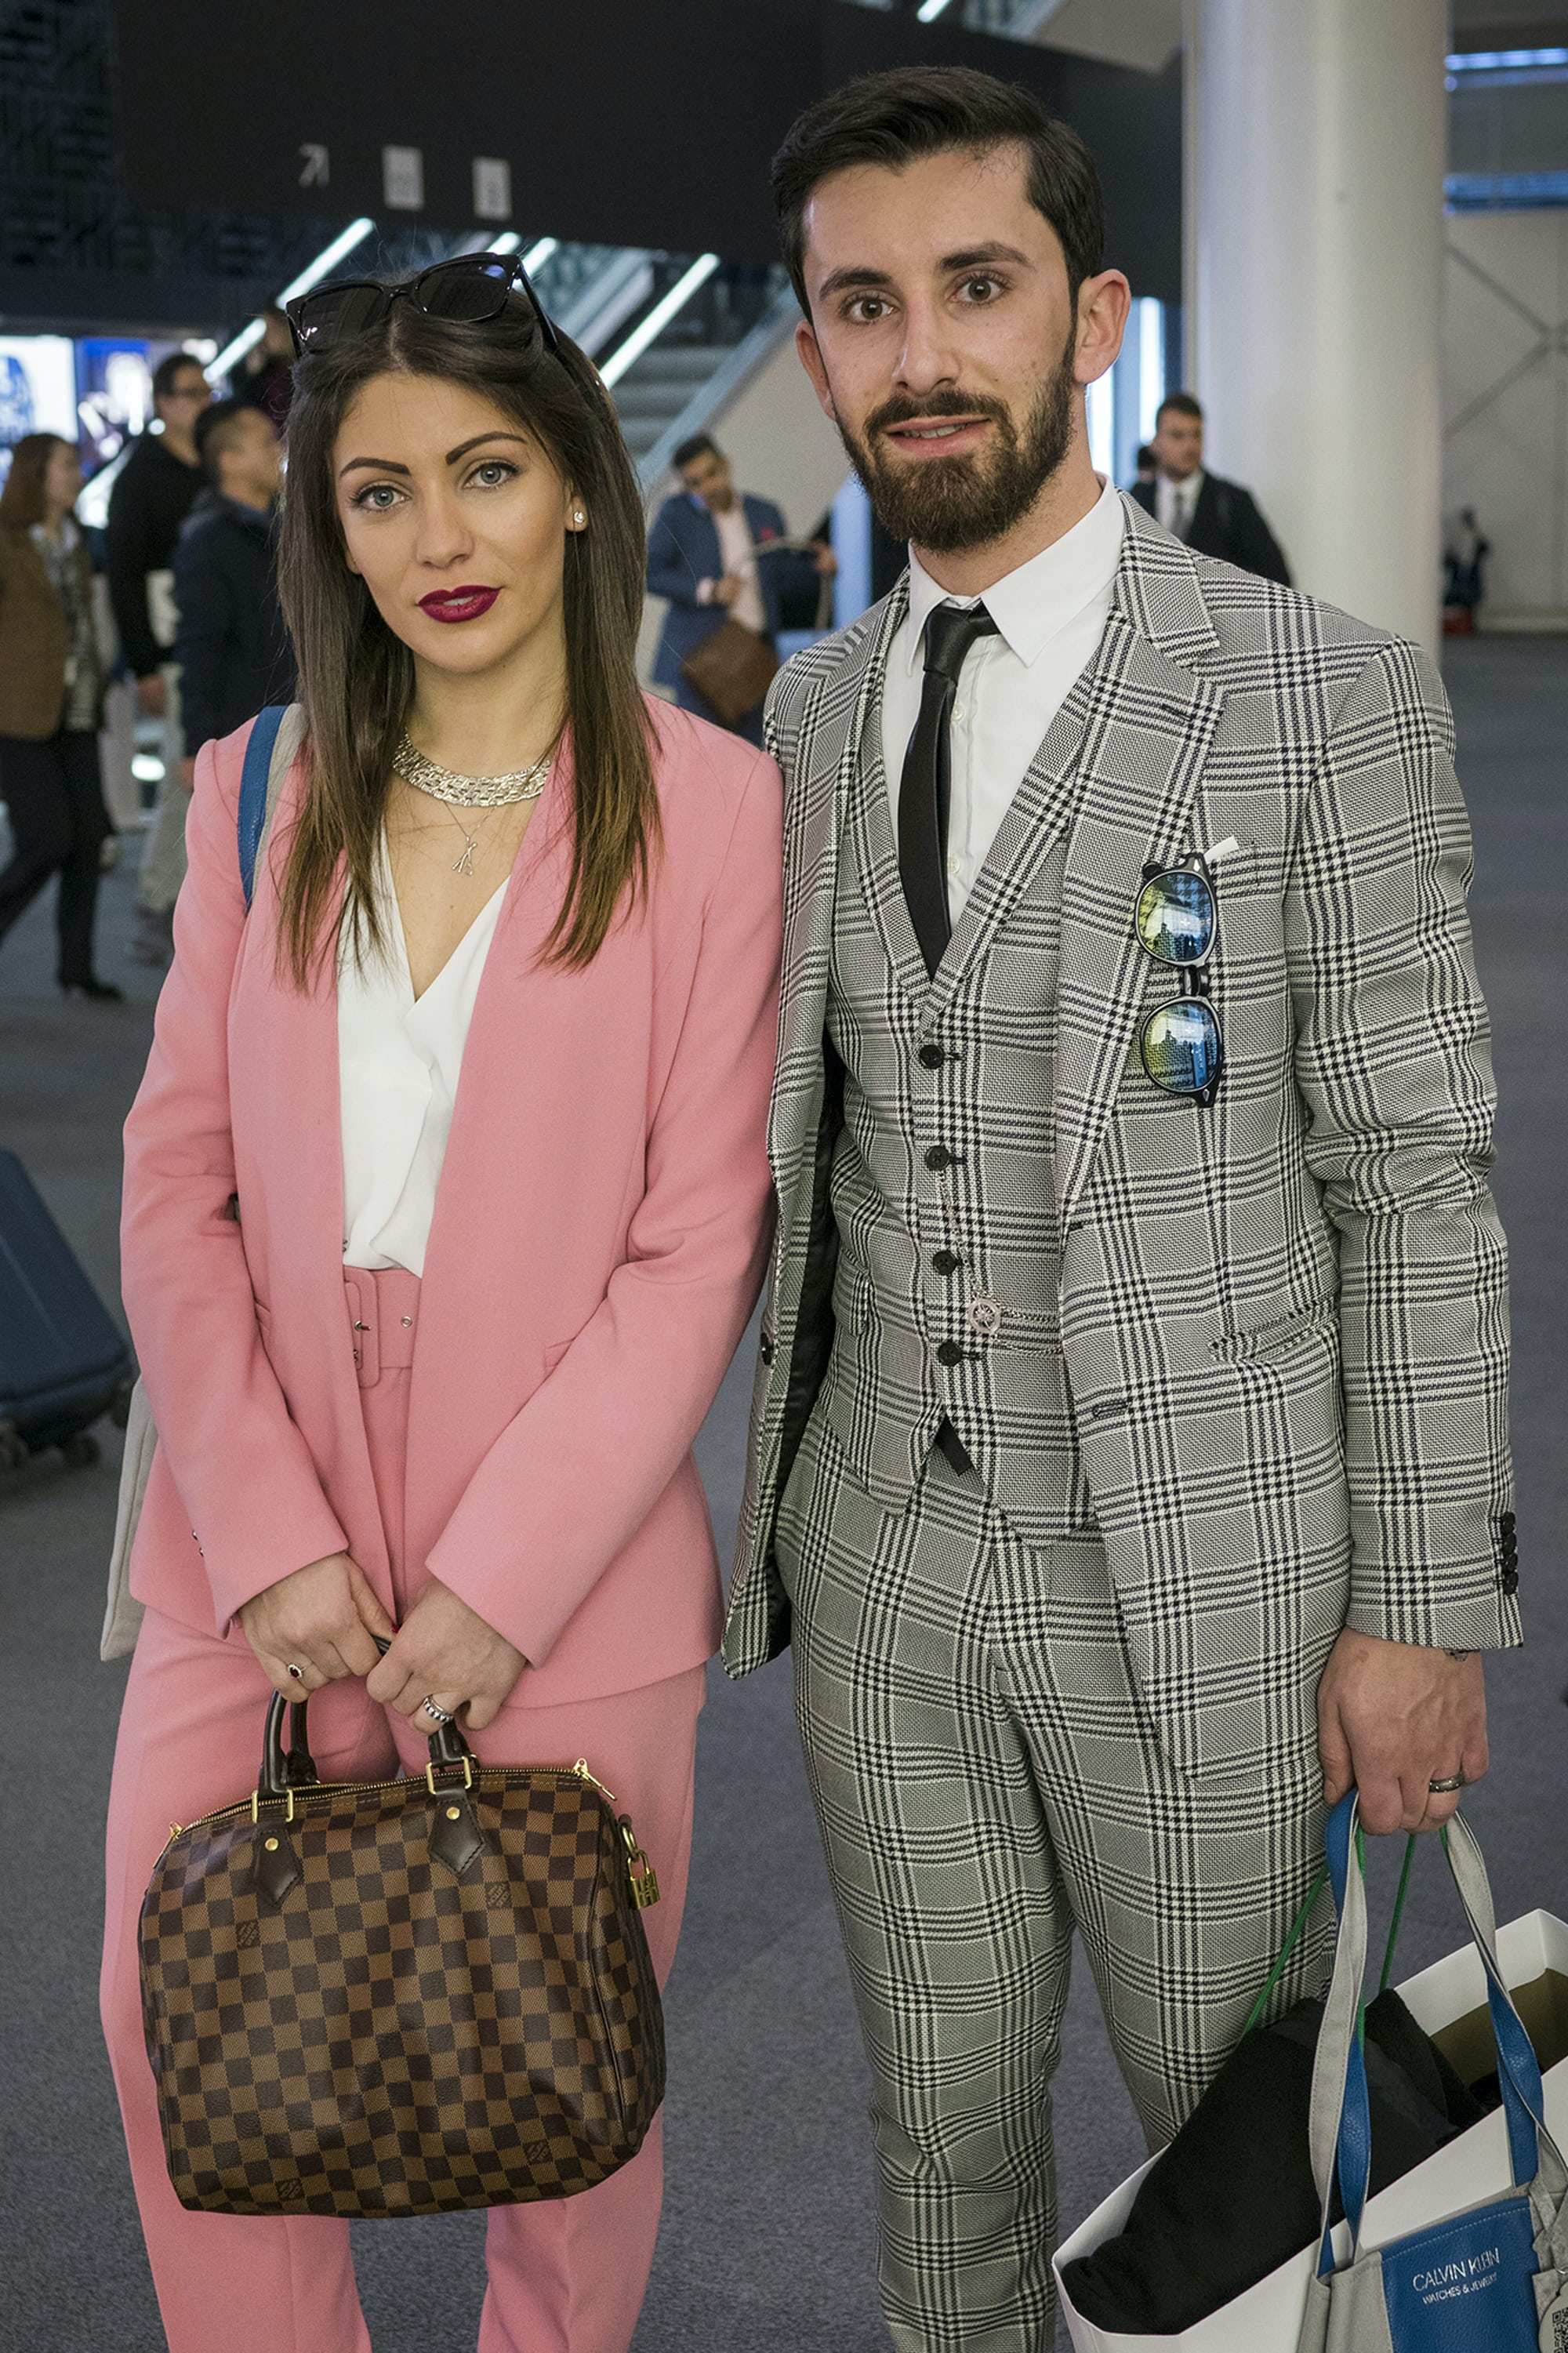 Photo Report: The Fashion And Watches Of Baselworld 2018 Photo Report: The Fashion And Watches Of Baselworld 2018 DSC00934 copy